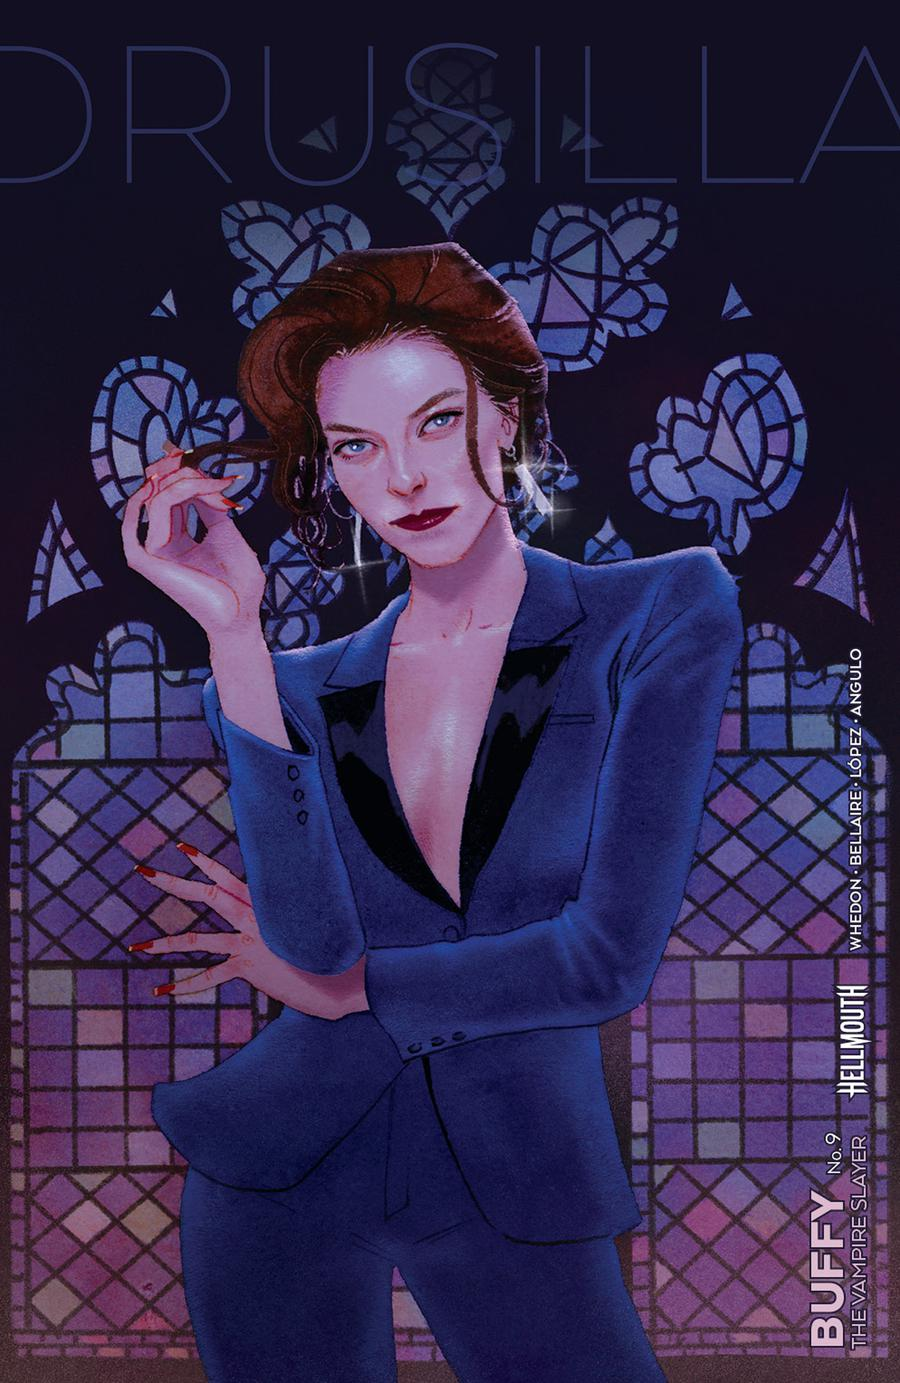 Buffy The Vampire Slayer Vol 2 #9 Cover B Variant Kevin Wada Cover (Hellmouth Tie-In)